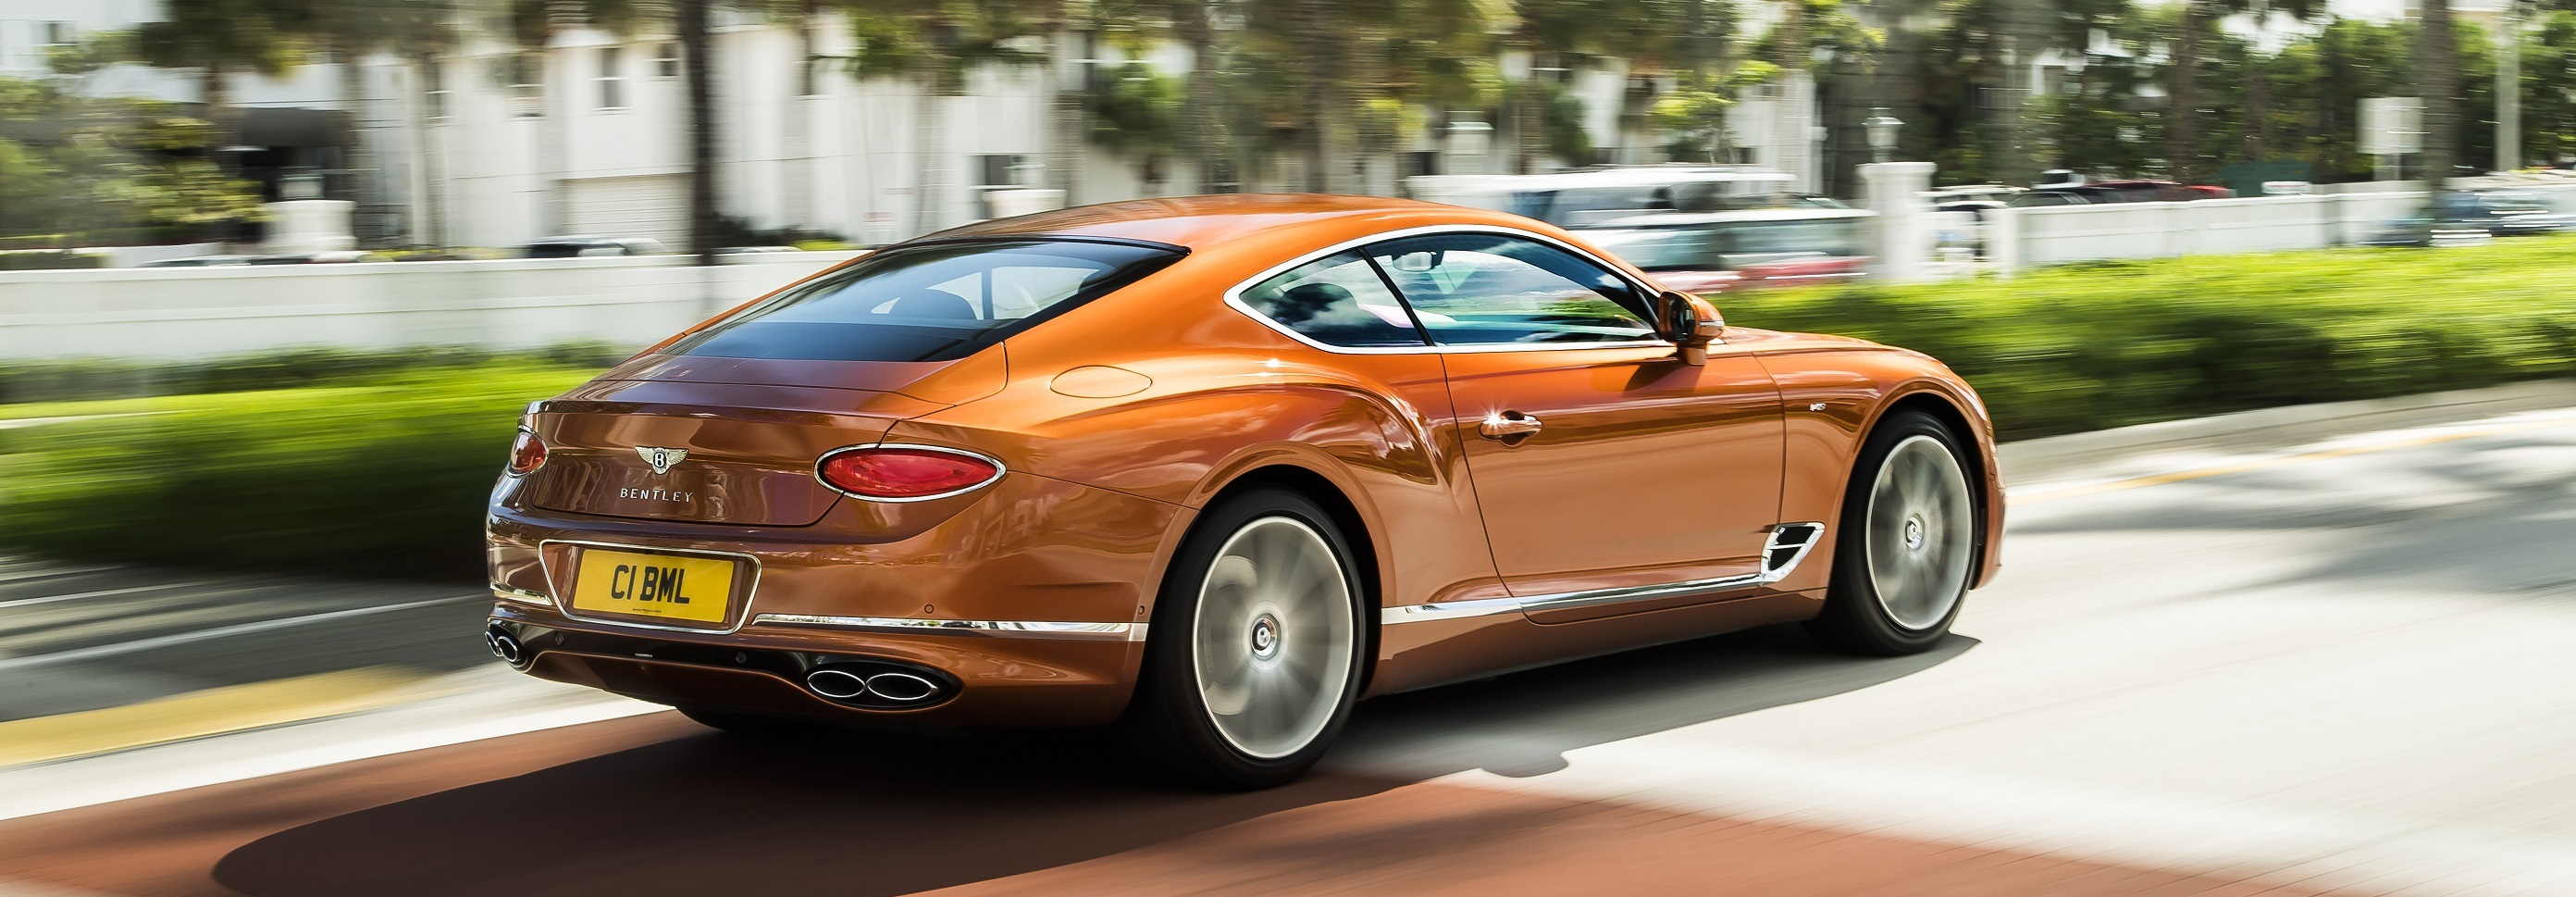 2020 Bentley Continental GT for Sale near Chicago, IL